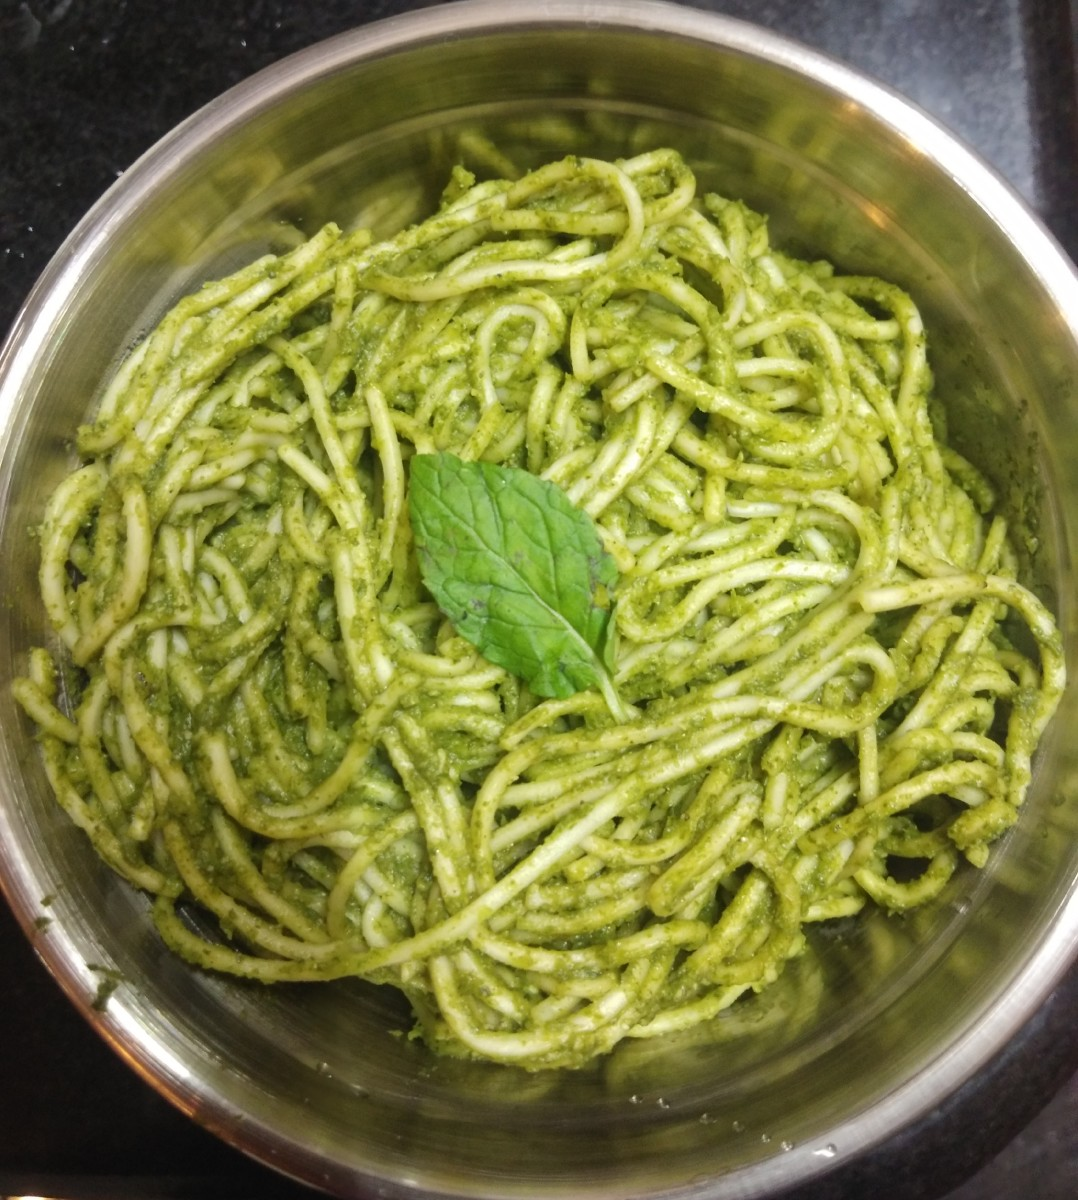 Green Noodles or Noodles With Mint Paste